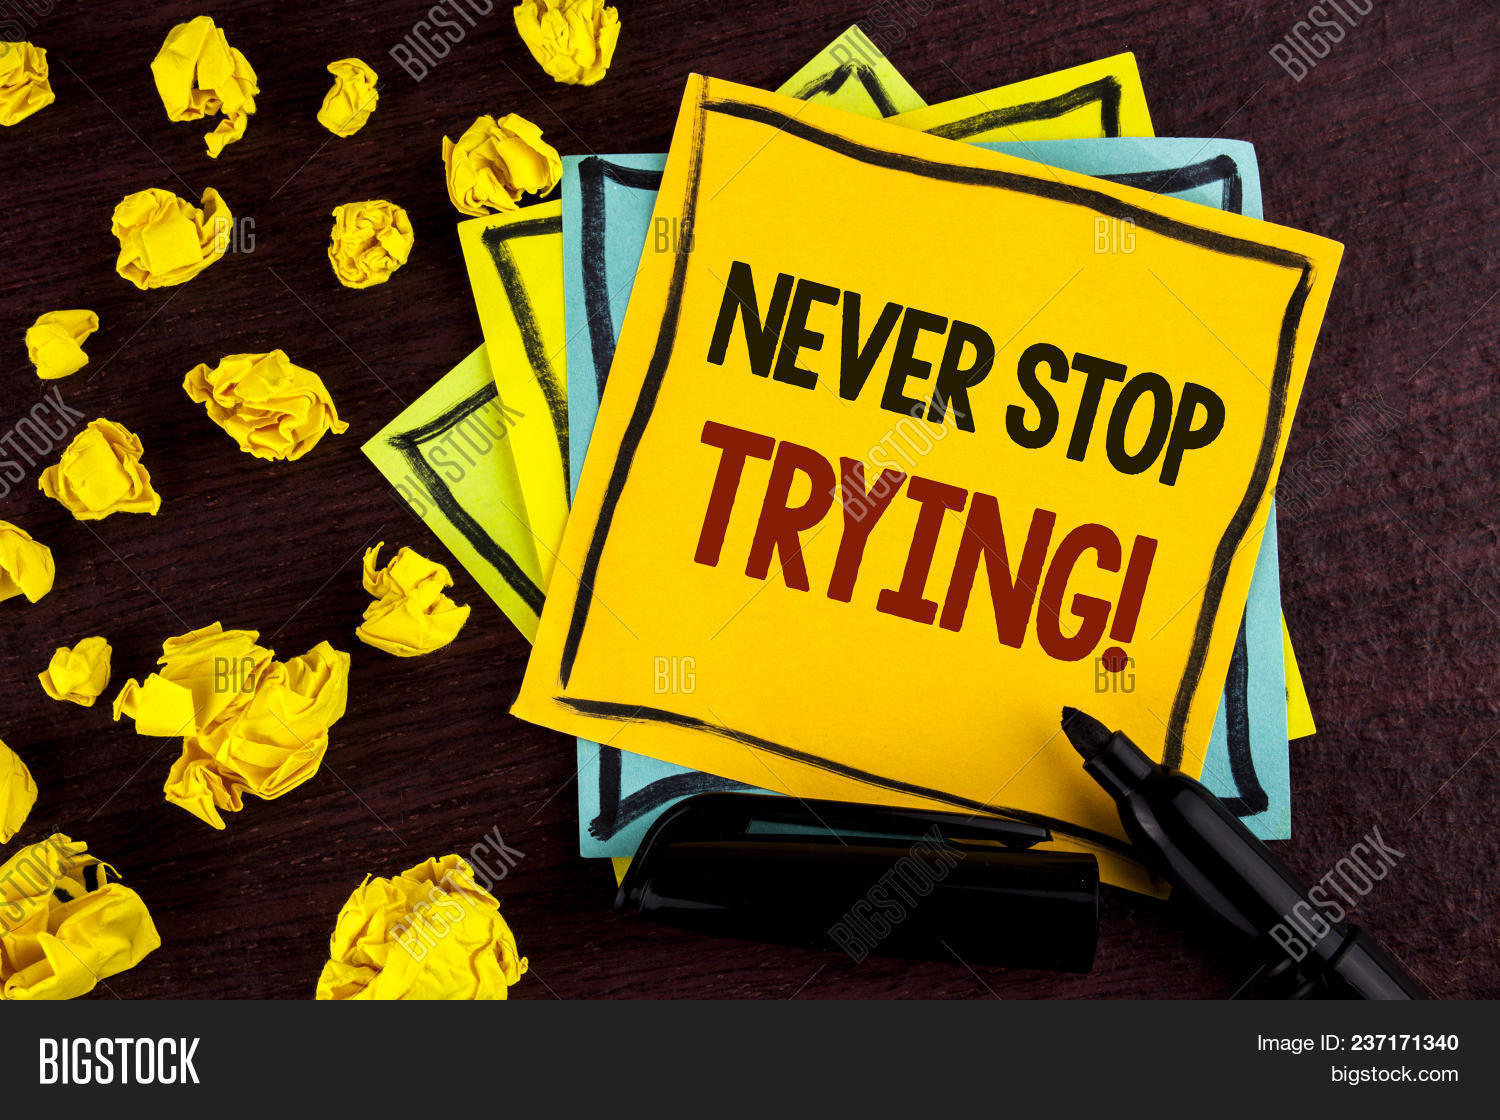 achievement,advice,again,aiming,attitude,change,coaching,concept,courage,decision,determination,do,dont,effort,encouragement,fail,failure,give,inspiration,inspirational,motivate,motivated,motivating,motivation,motivational,never,opportunity,persistence,persistent,positive,positivity,quit,solutions,stop,strength,succeed,success,successful,training,try,trying,up,working,workplace